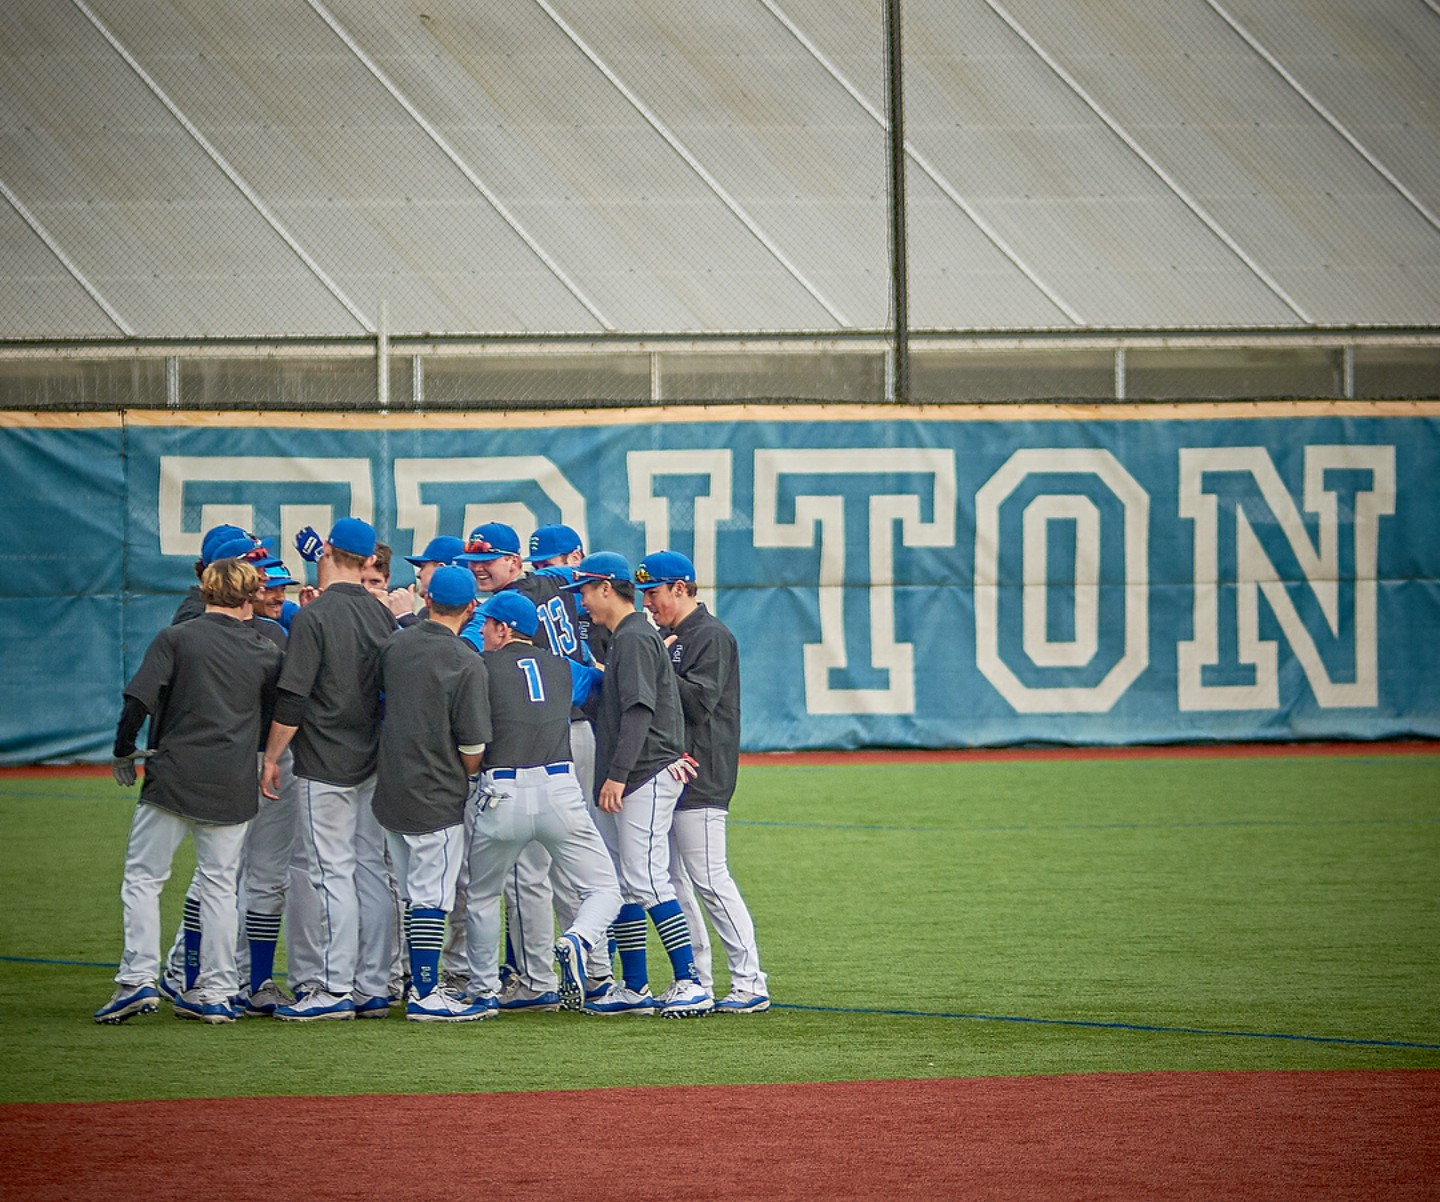 The Tritons, huddled together for a team chant before their game.